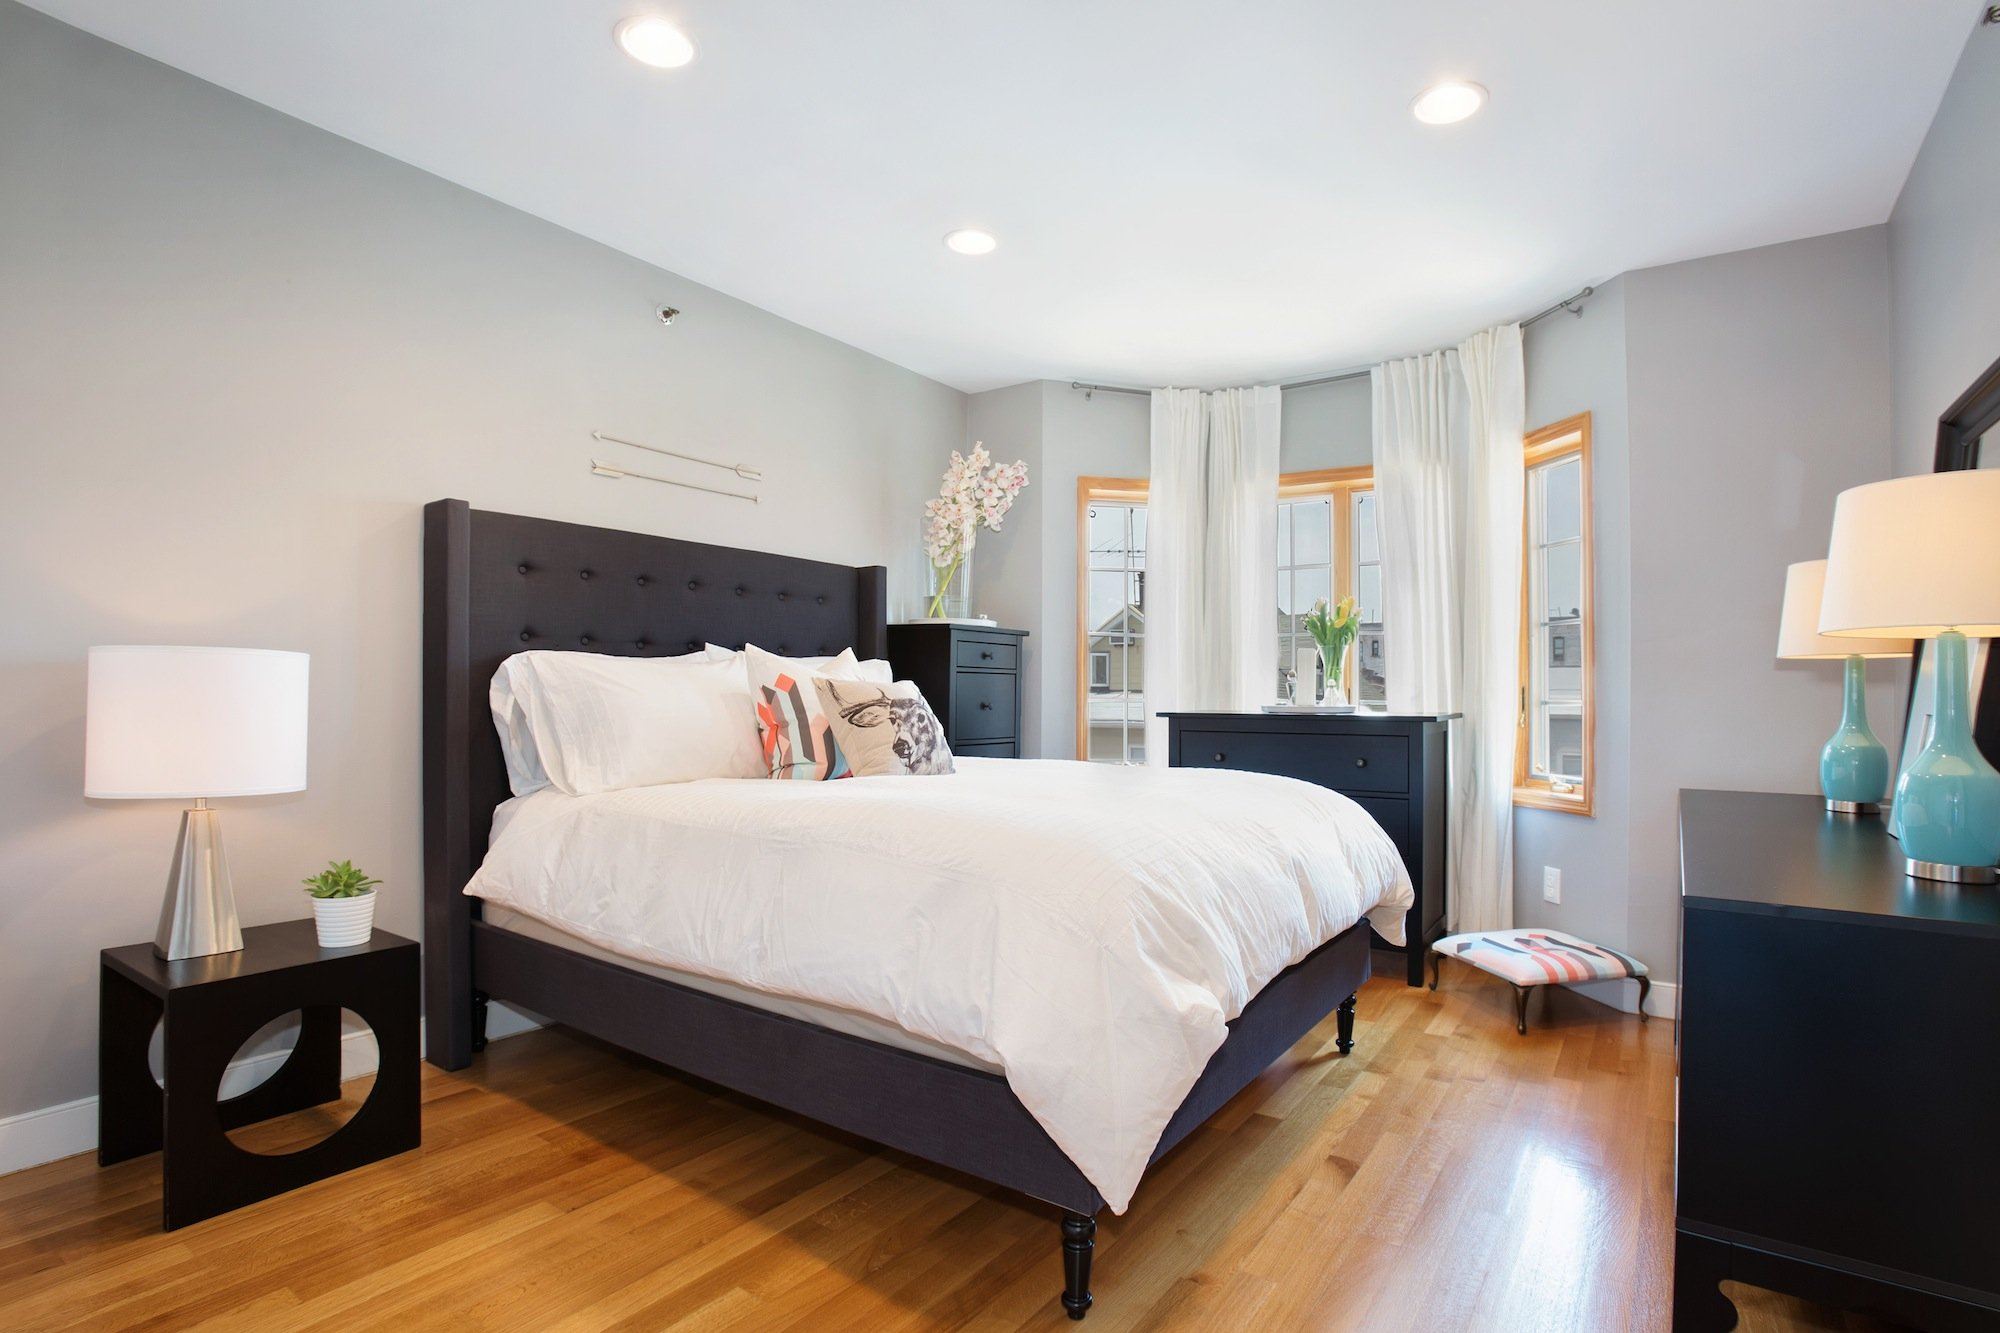 734 East 5th Street, kensingon, master bedroom